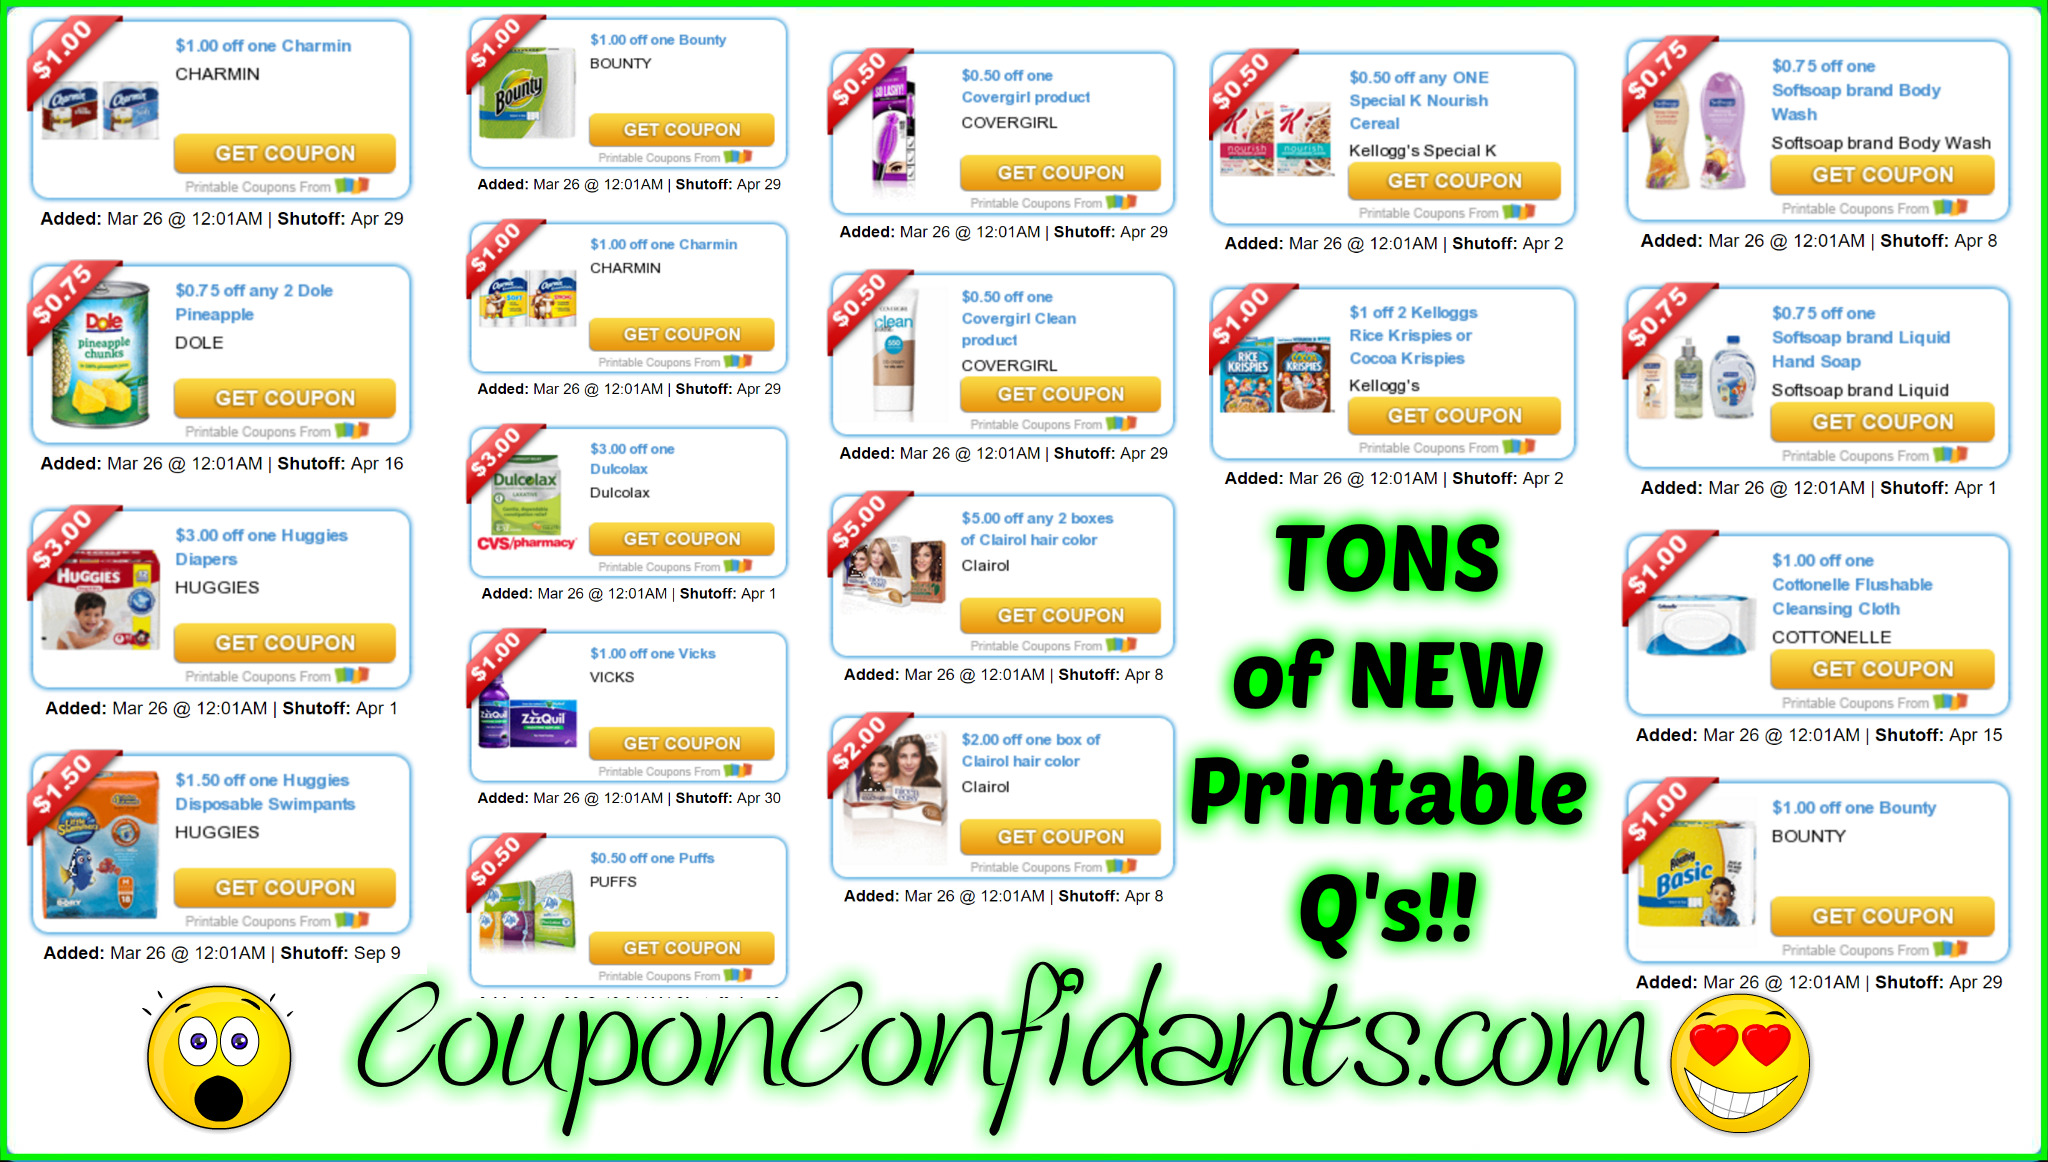 MASSIVE List of the NEWEST Printable Coupons!! :)